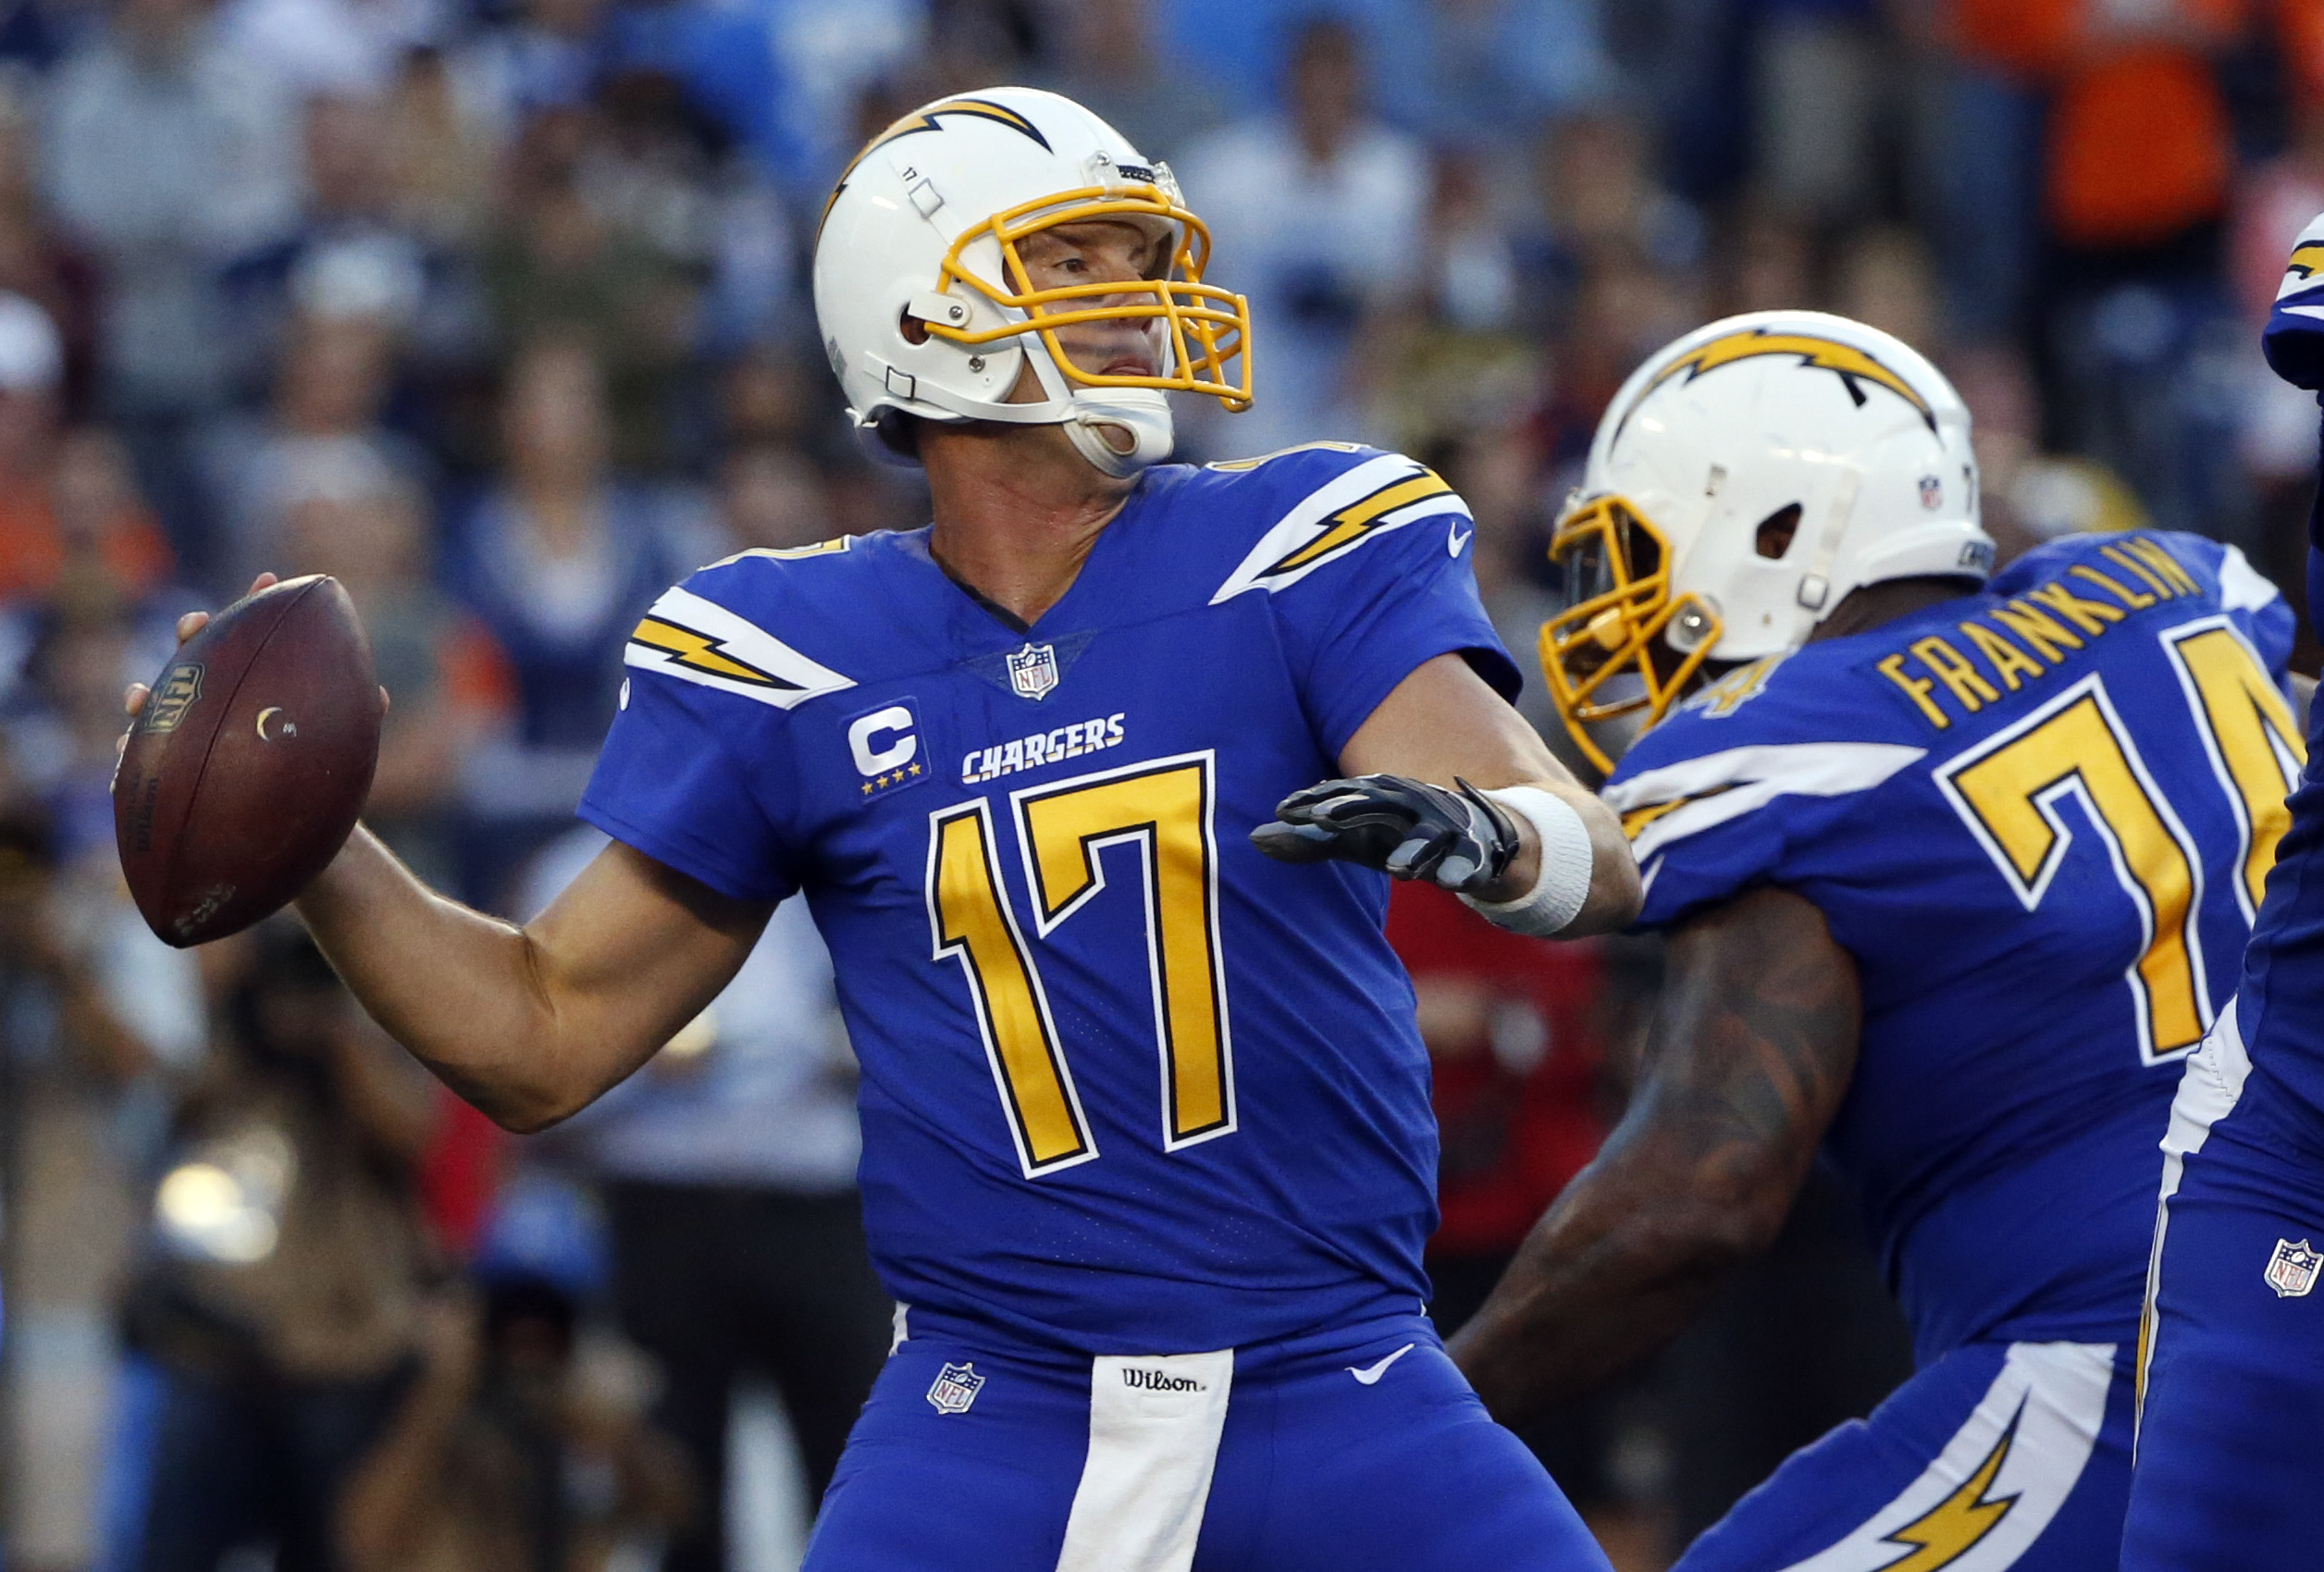 San Diego Chargers quarterback Philip Rivers throws a pass during the first half of an NFL football game against the Denver Broncos, Thursday, Oct. 13, 2016, in San Diego. (AP Photo/Lenny Ignelzi)